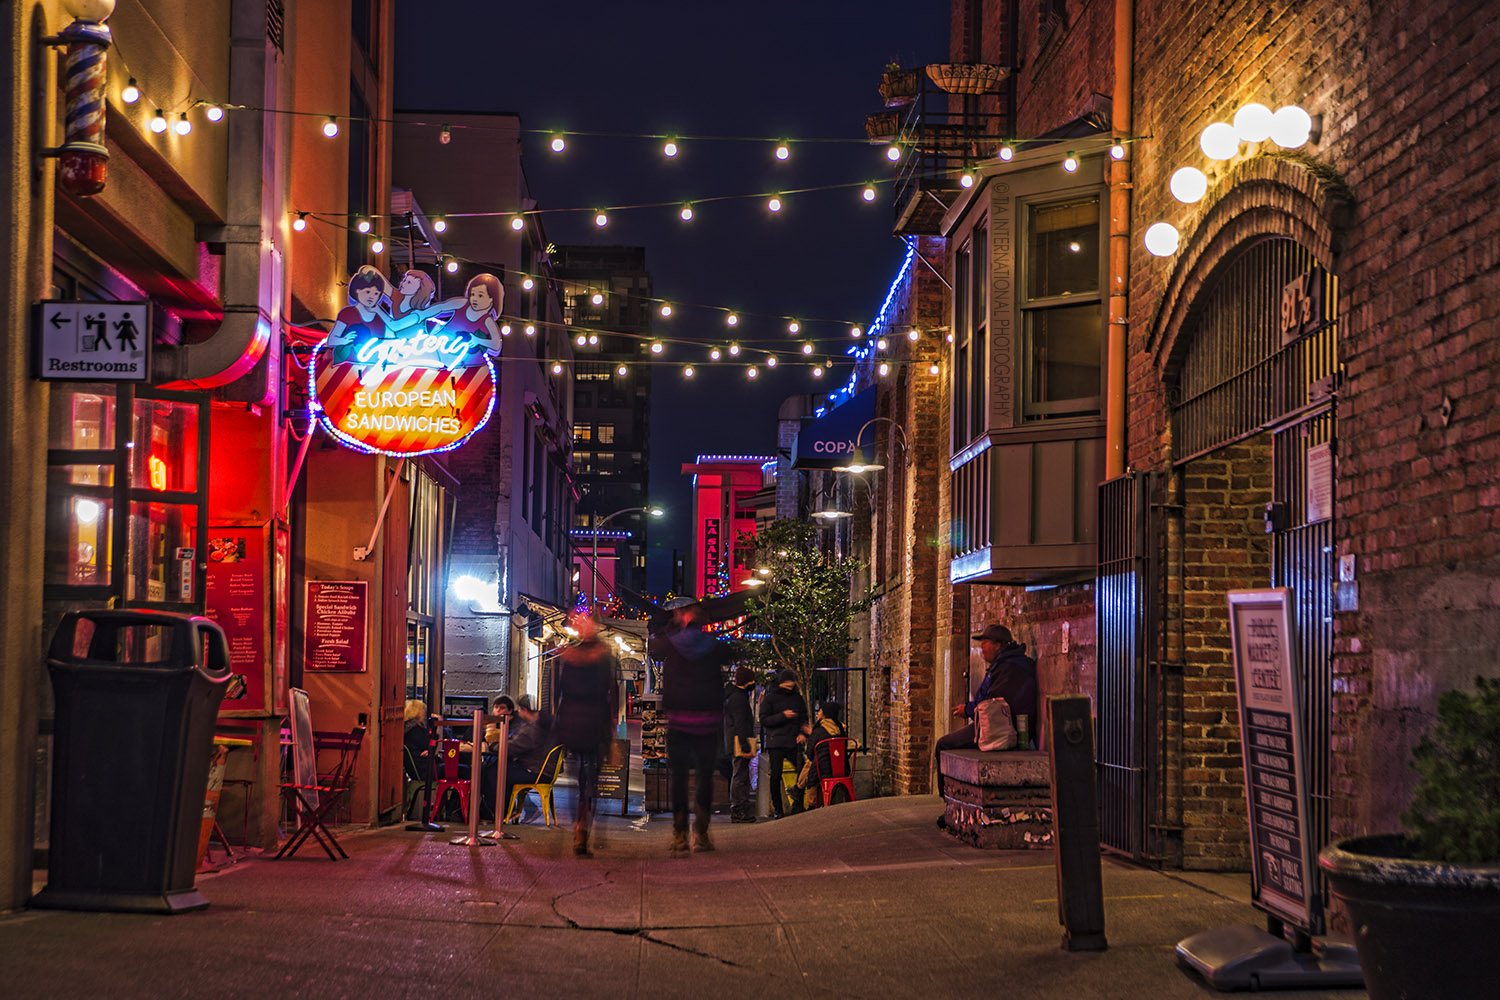 Post Alley during the holiday season. Downtown Seattle. (December 18, 2020)